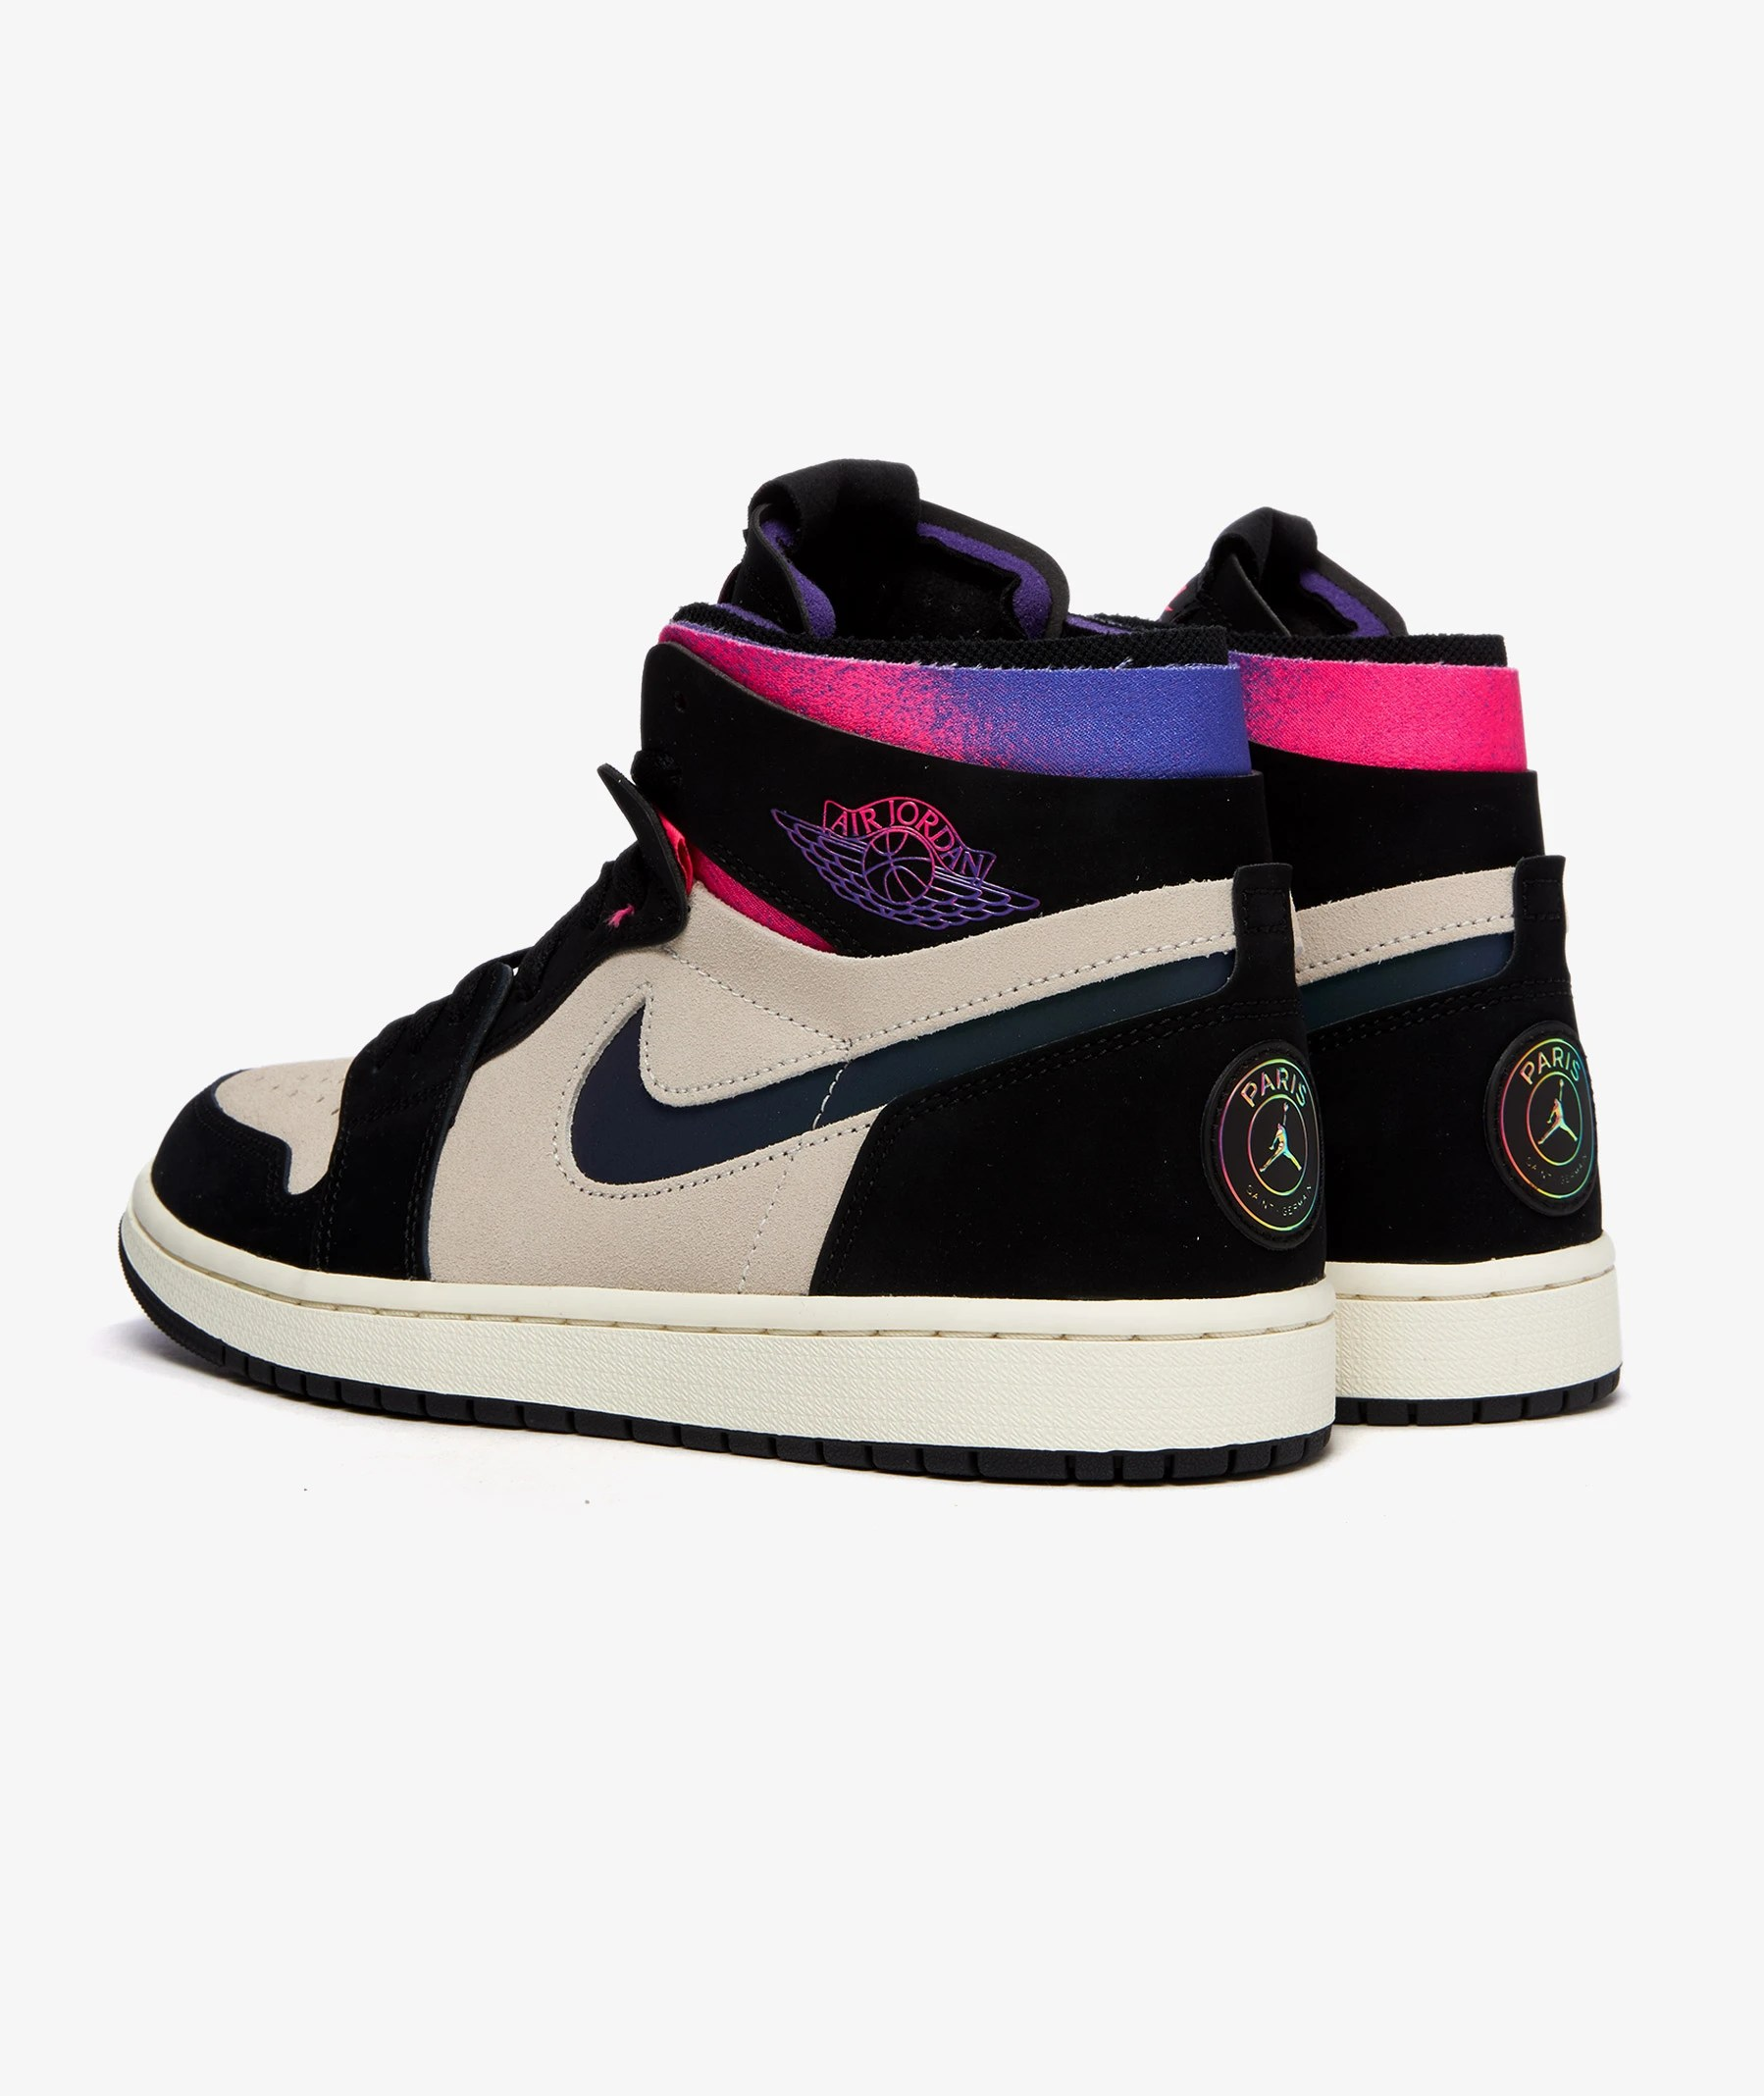 buy now jordan air jordan 1 zoom air